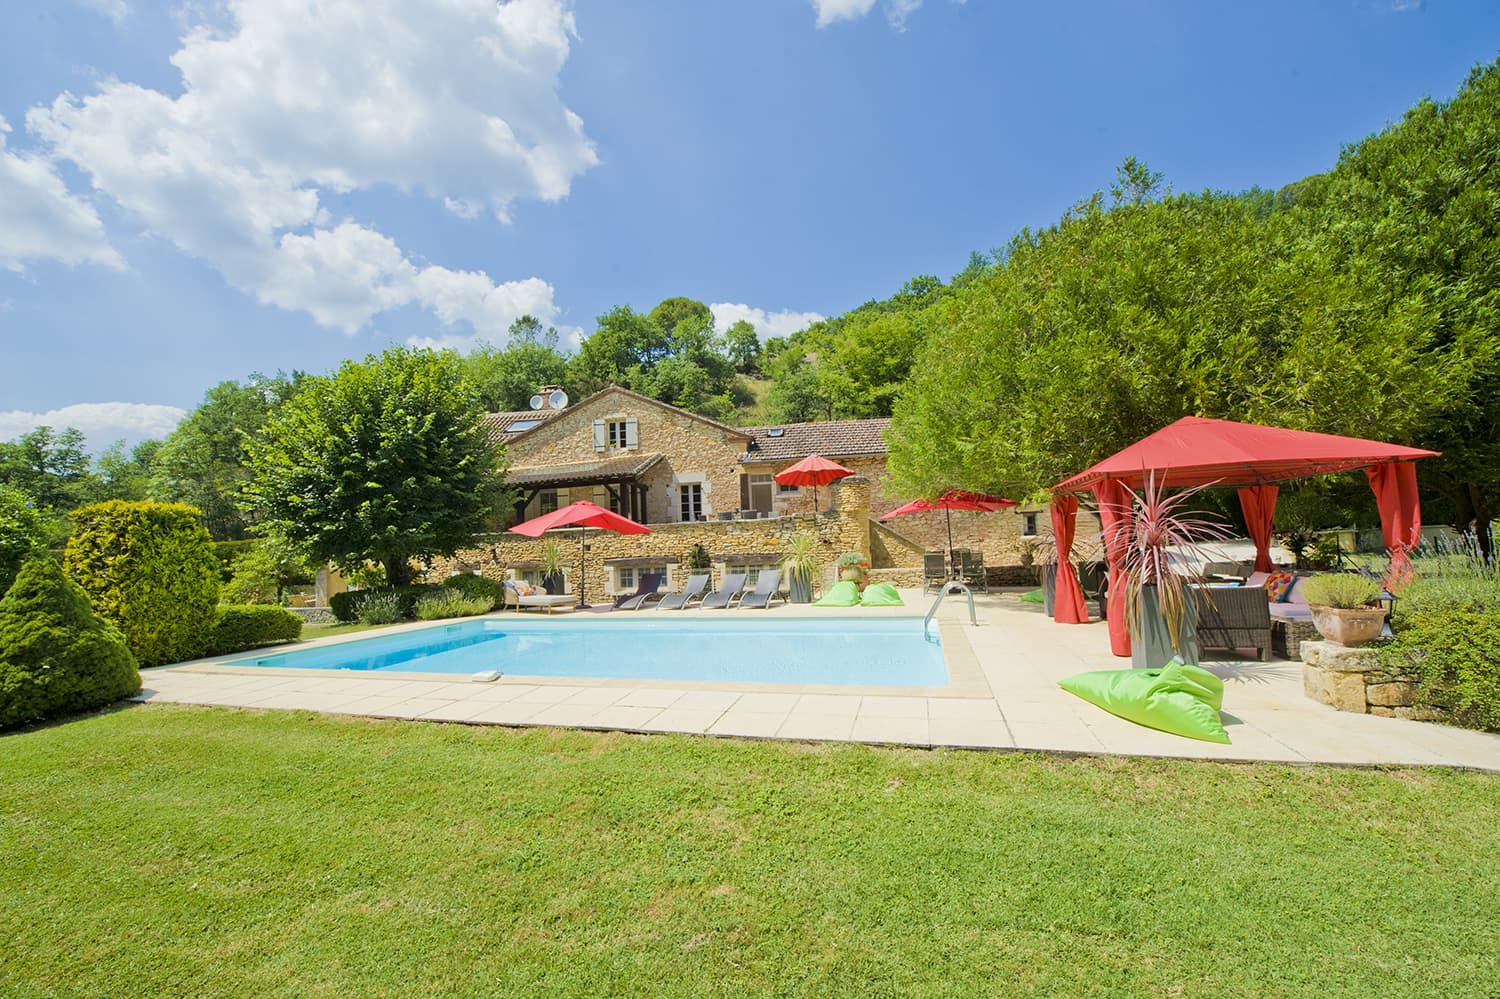 Holiday home in Lot-et-Garonne with private, solar heated pool